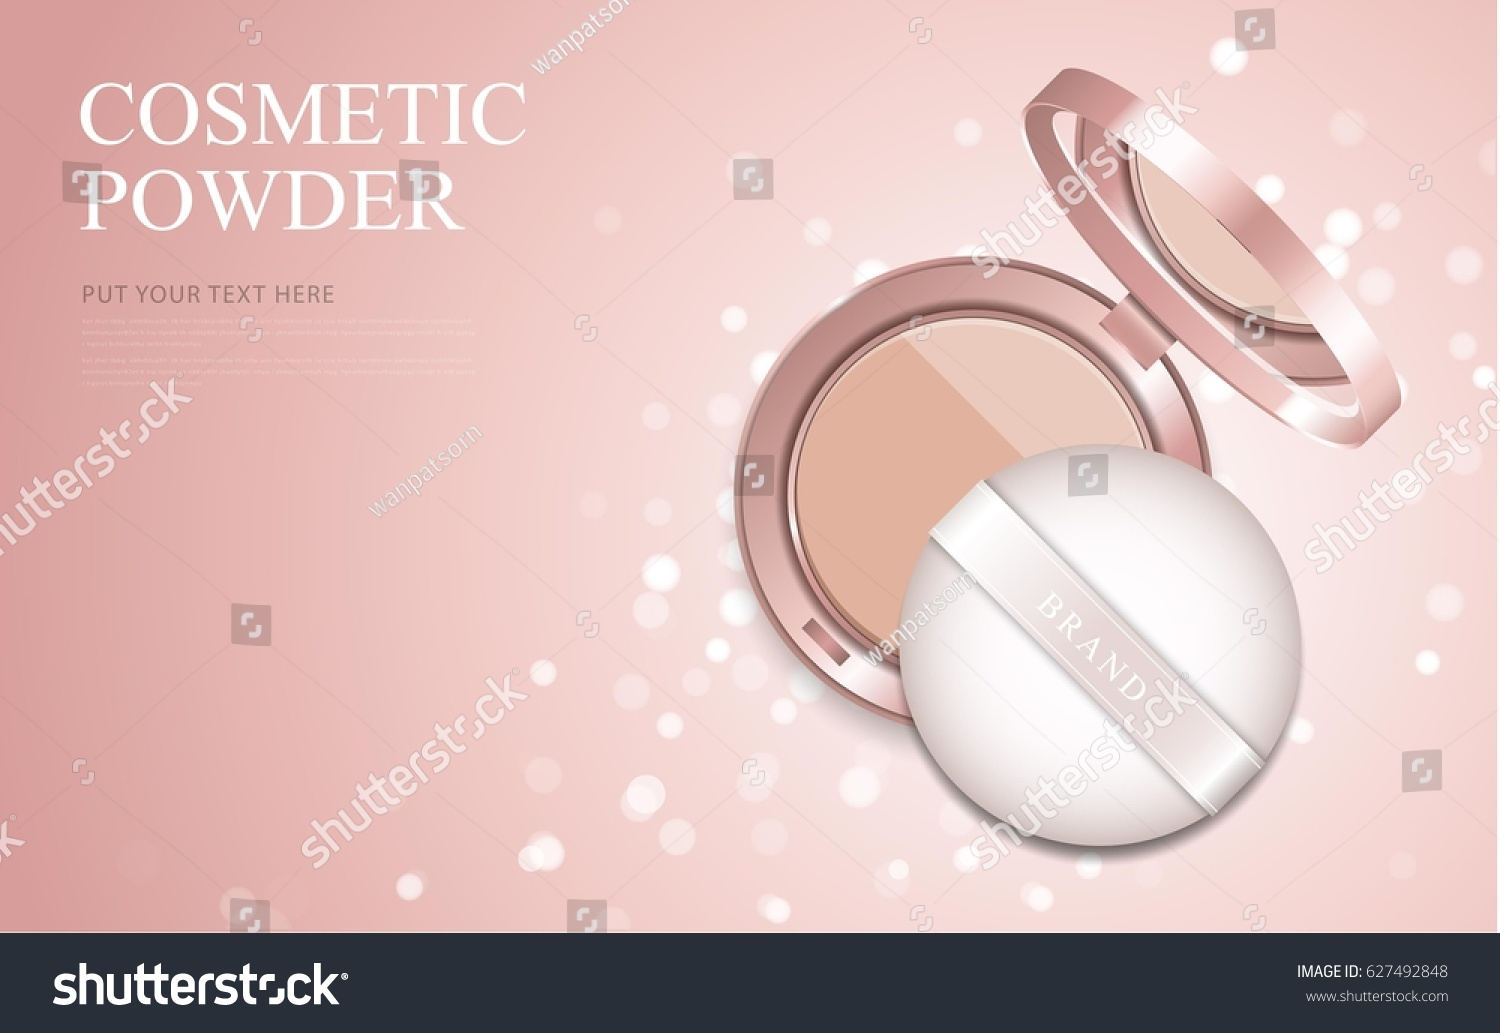 Luxury Makeup Powder Ads Pink Package Stock Vector (2018) 627492848 ...